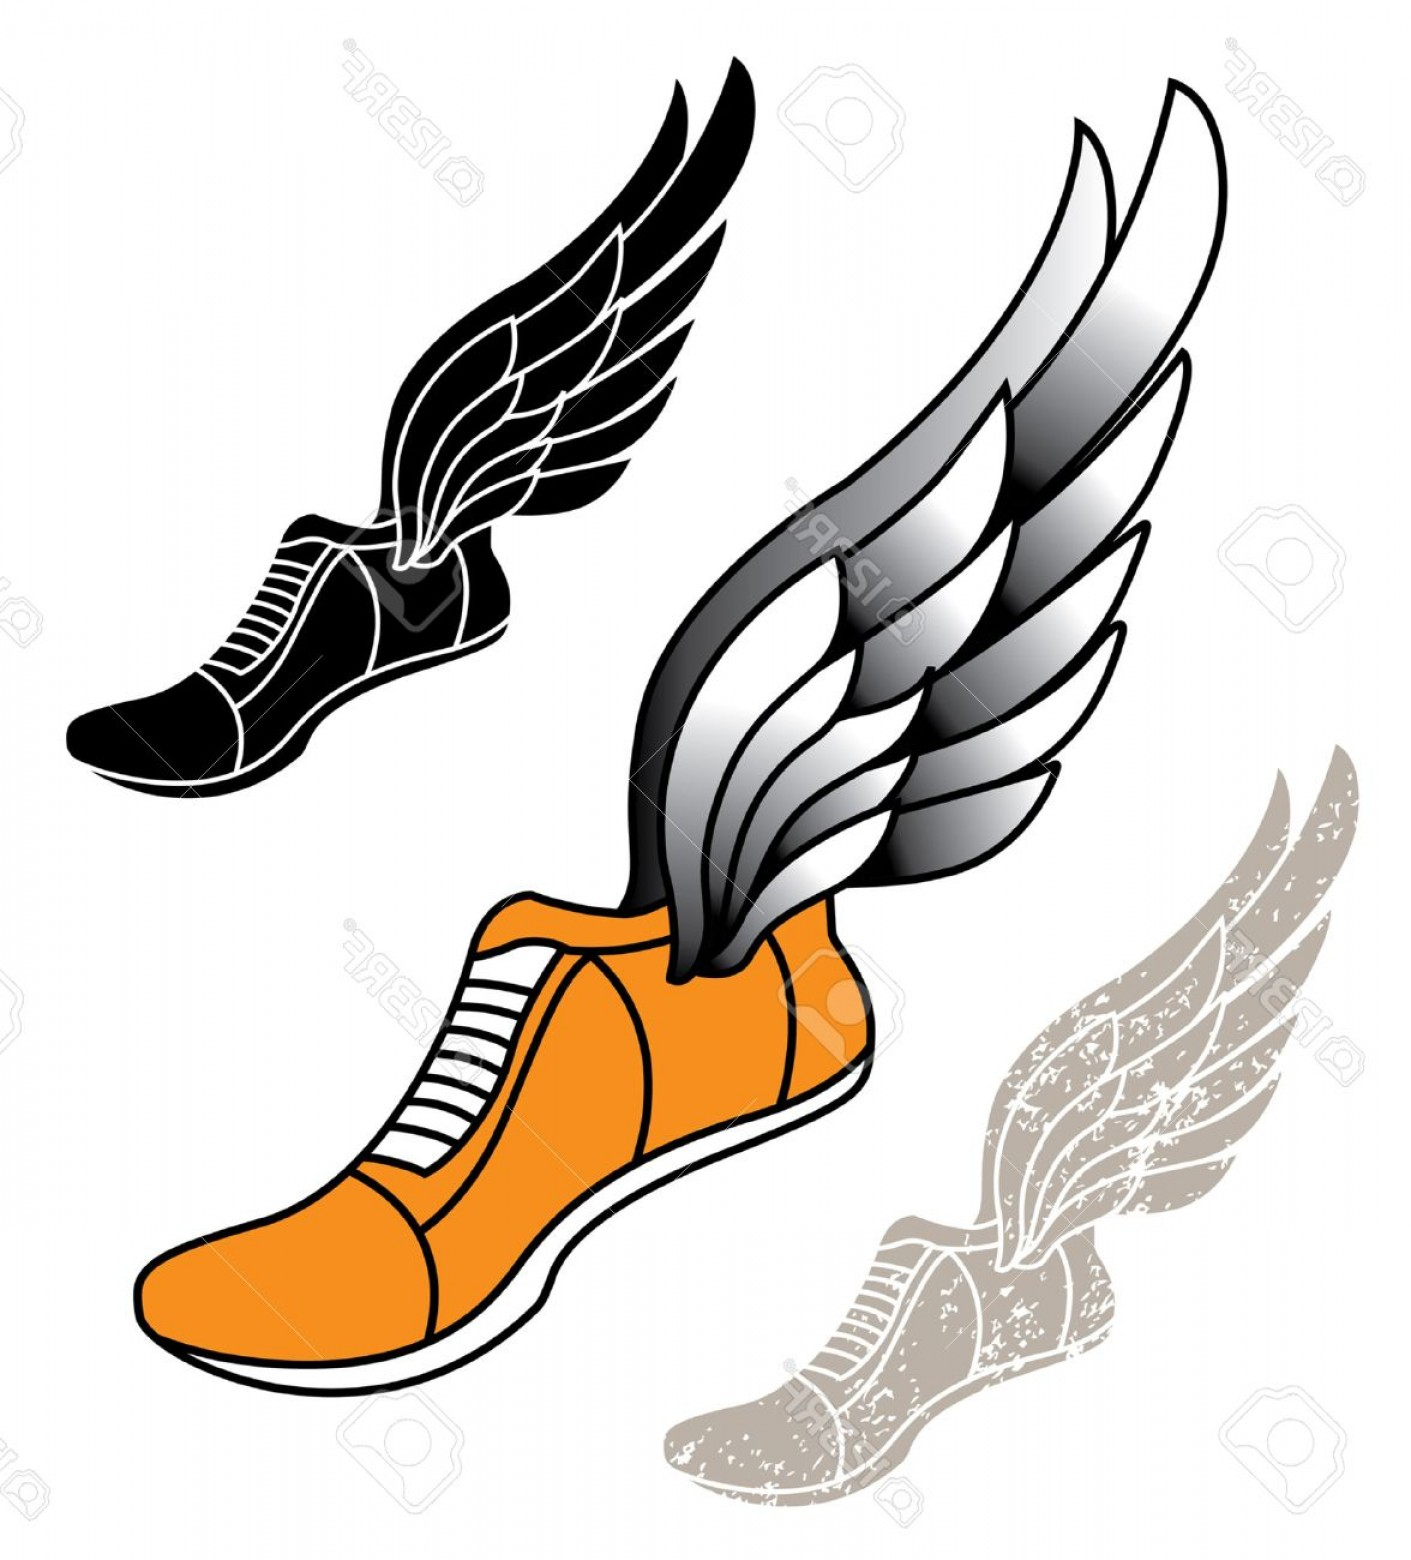 Flying track shoe clipart 1500 x 1500 vector transparent stock Photostock Vector Track Athletic Sports Running Shoe Logo With Wings ... vector transparent stock